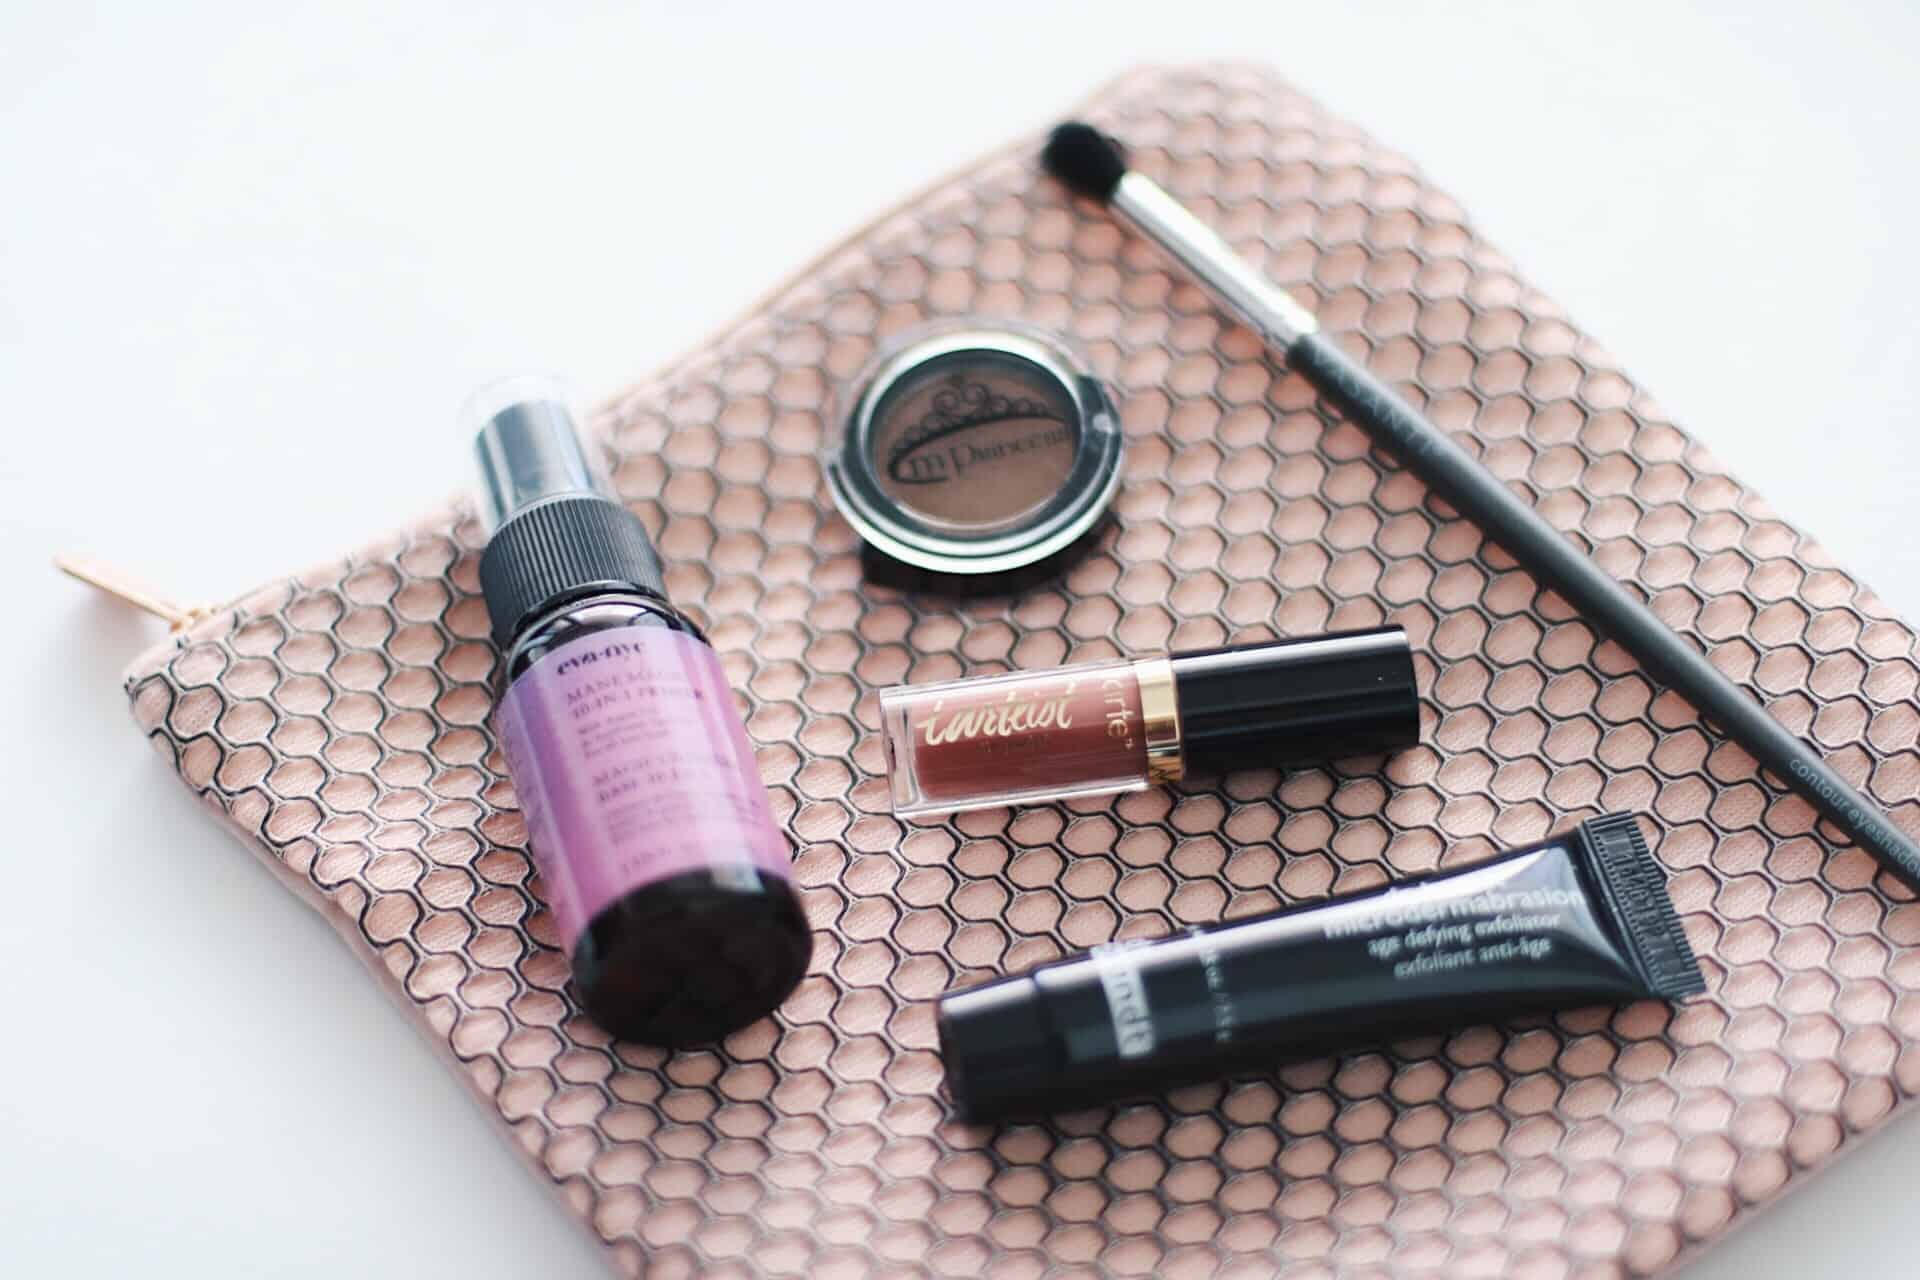 Is the Ipsy Glam Bag worth it?   Ipsy Glam Bag by Michelle Phan review   Diary of a Toronto Girl, a Canadian lifestyle blog